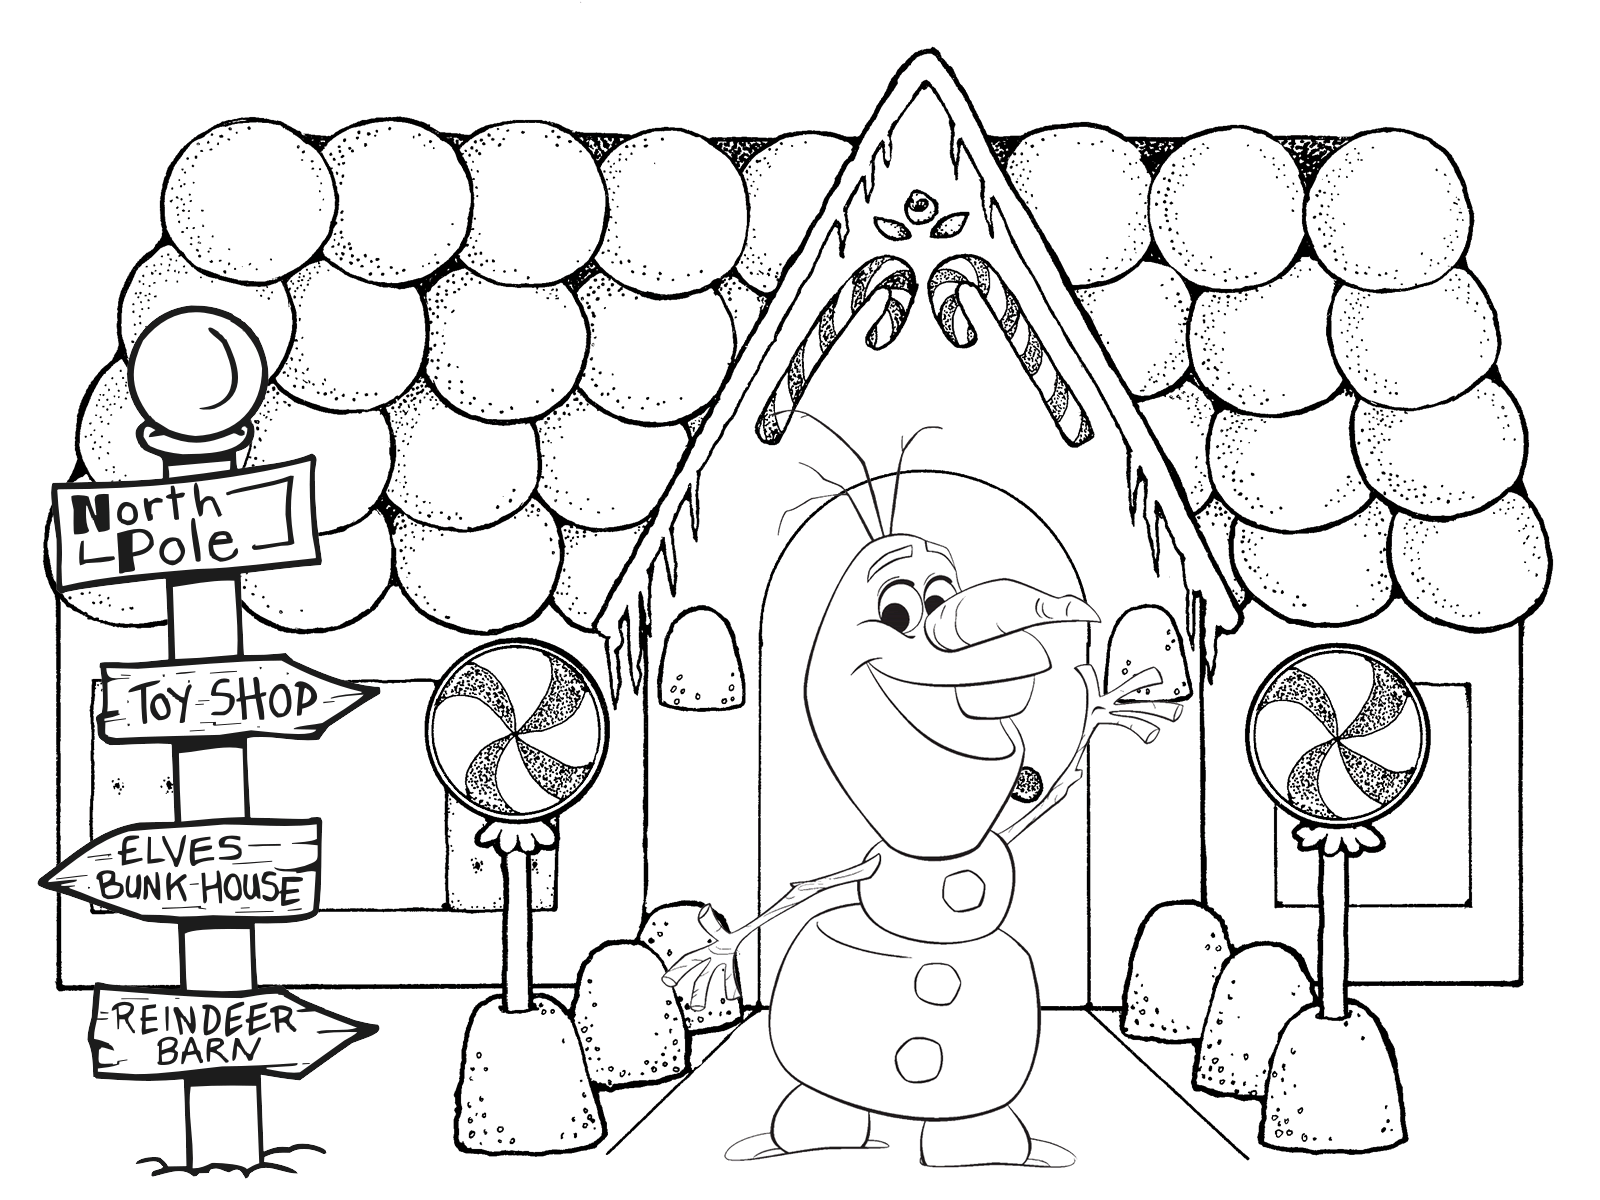 coloring pages christmas free printable - frozens olaf coloring pages best coloring pages for kids